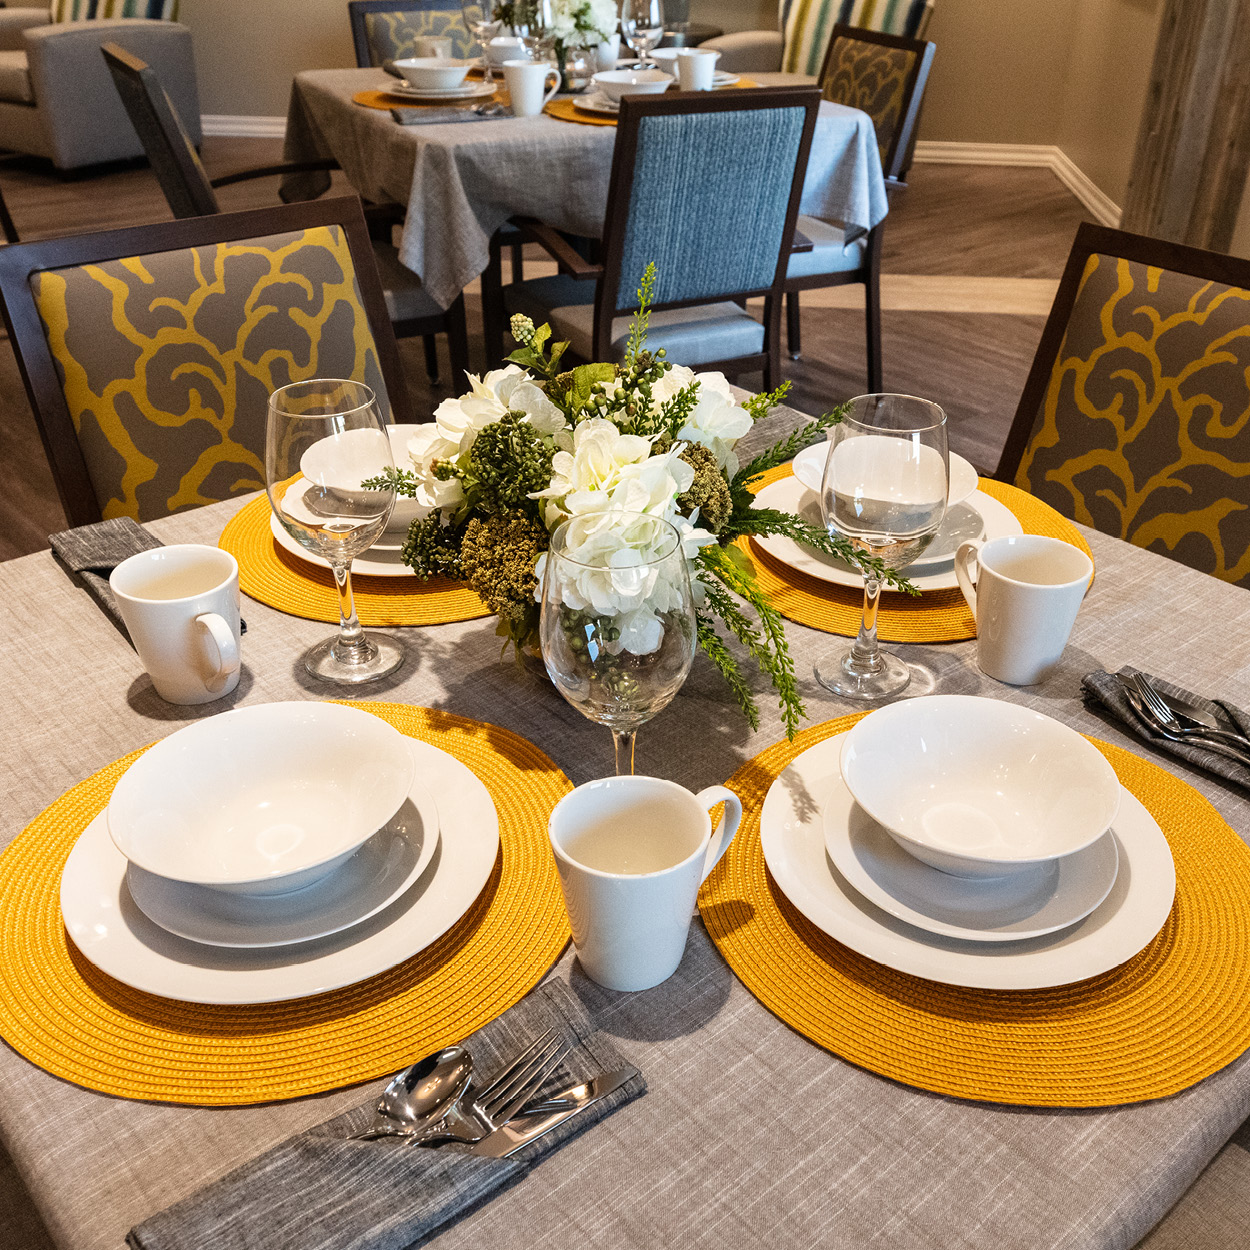 Stonerise Charleston dining table with place settings and floral centerpiece